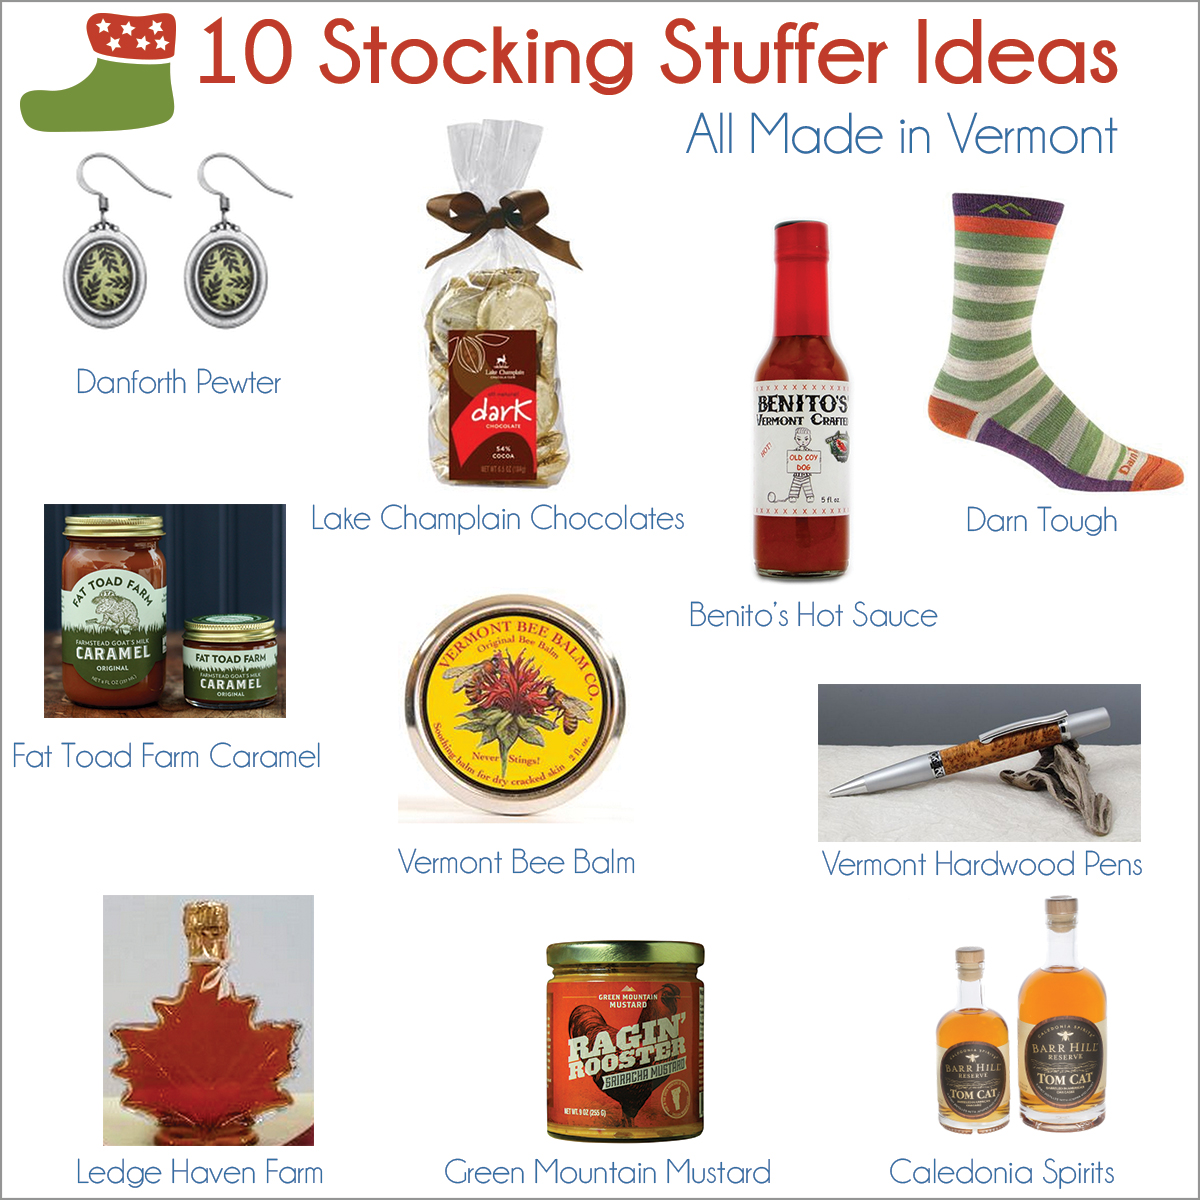 10 vermont made stocking stuffer ideas travel like a for Good ideas for stocking stuffers